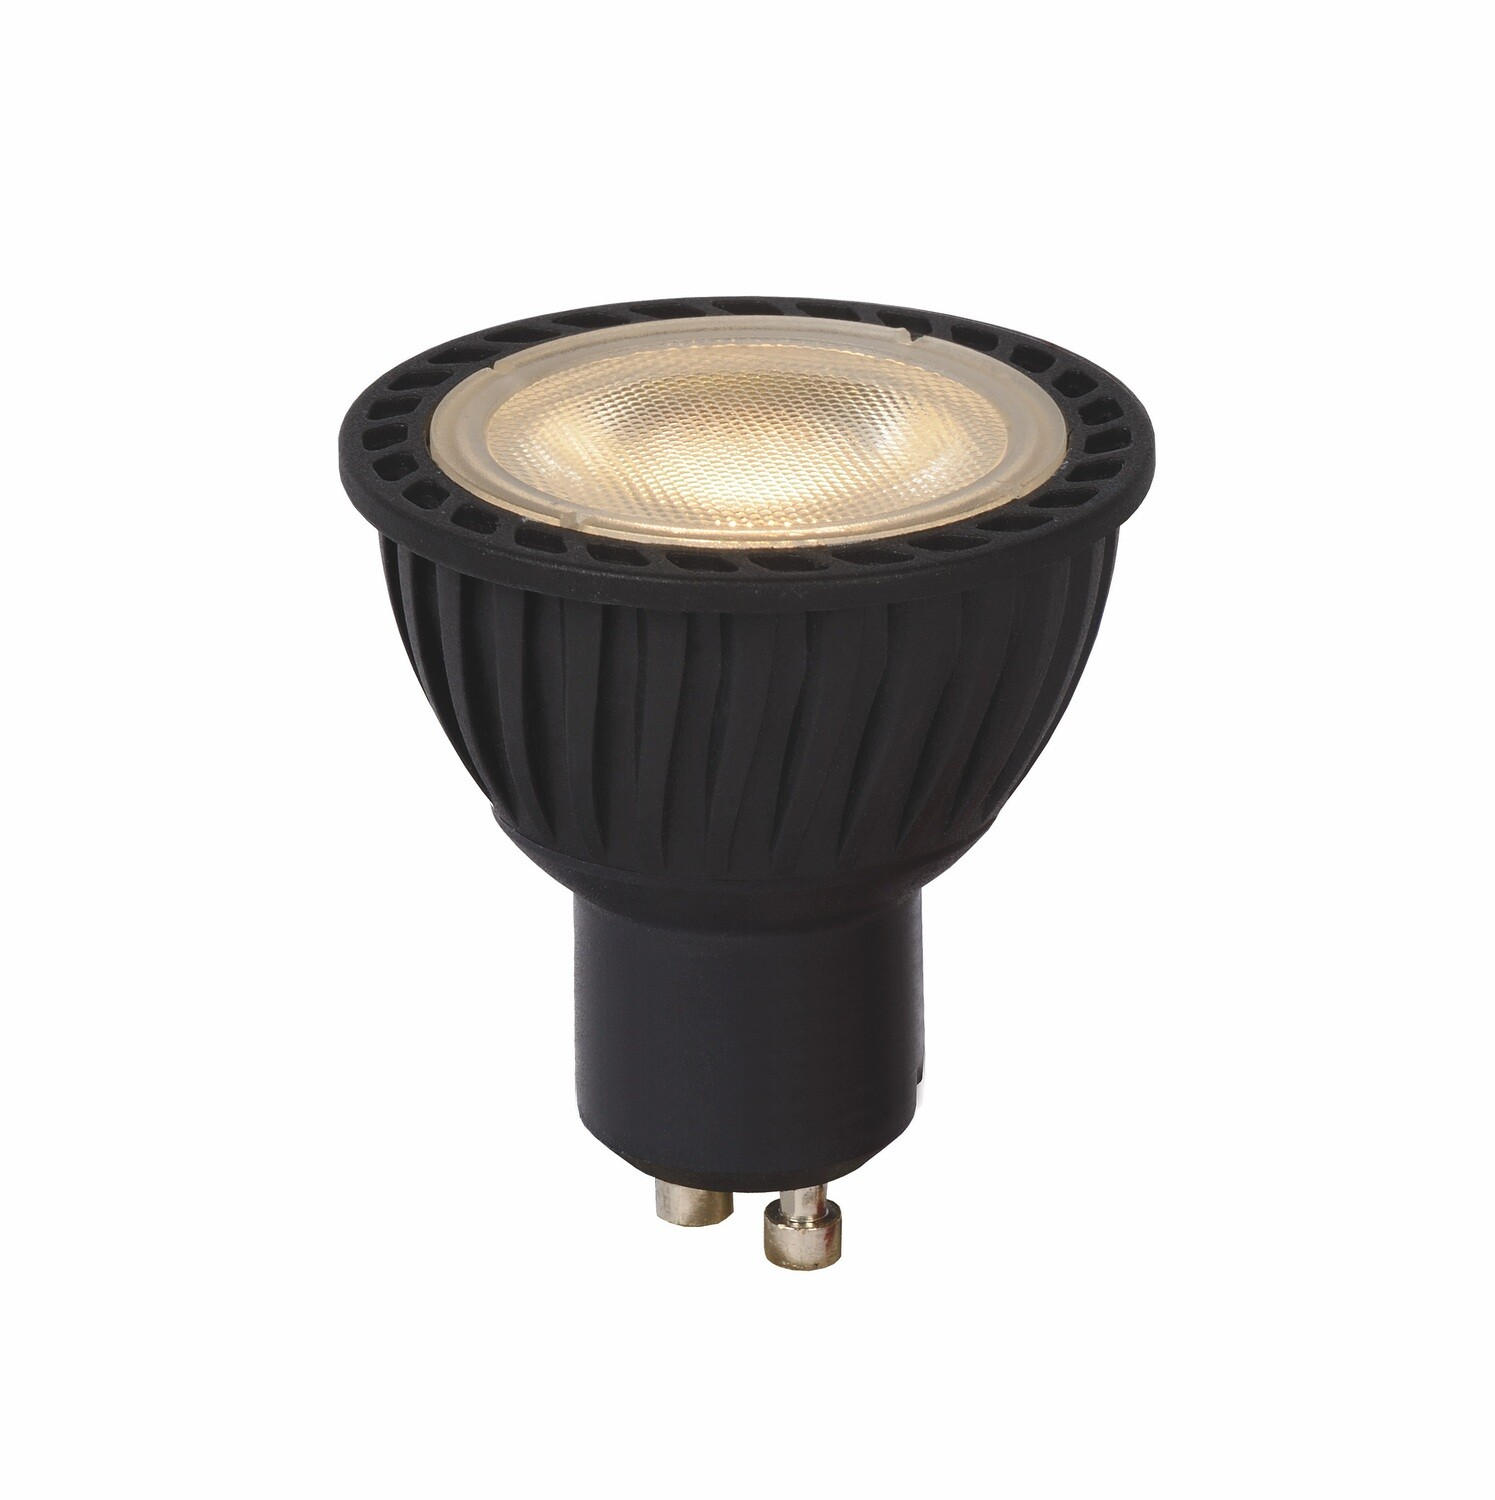 PACK OF 3 GU10-LED 5W beam 40º 3000K (warm white) 320lm DIMMABLE black